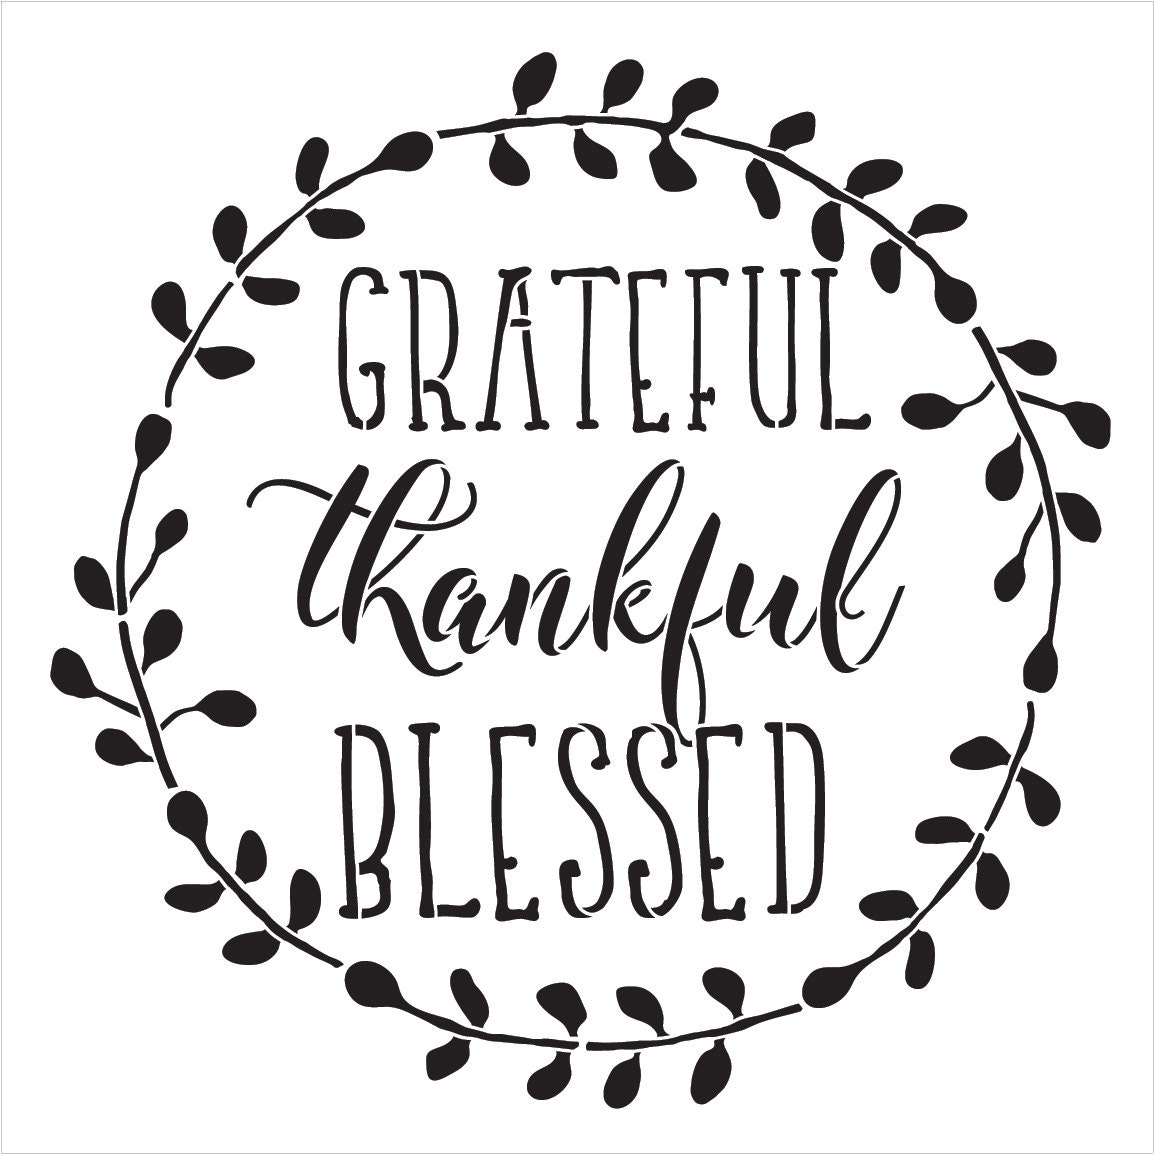 Grateful, Thankful, Blessed - Word Art Stencil - Select Size - STCL1803 - by StudioR12